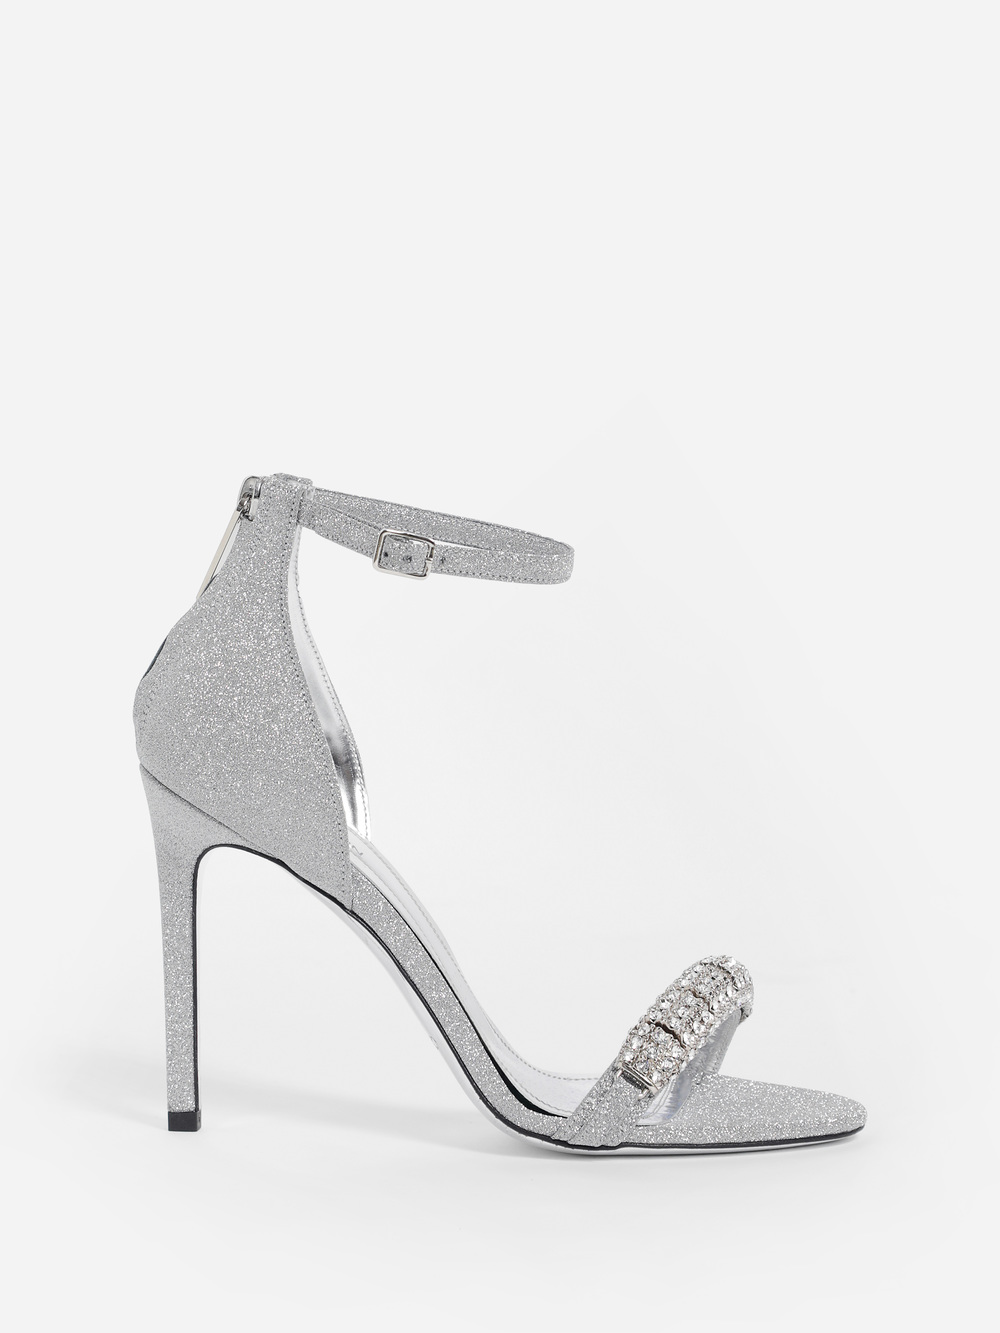 Image of Calvin Klein 205W39NYC Sandals